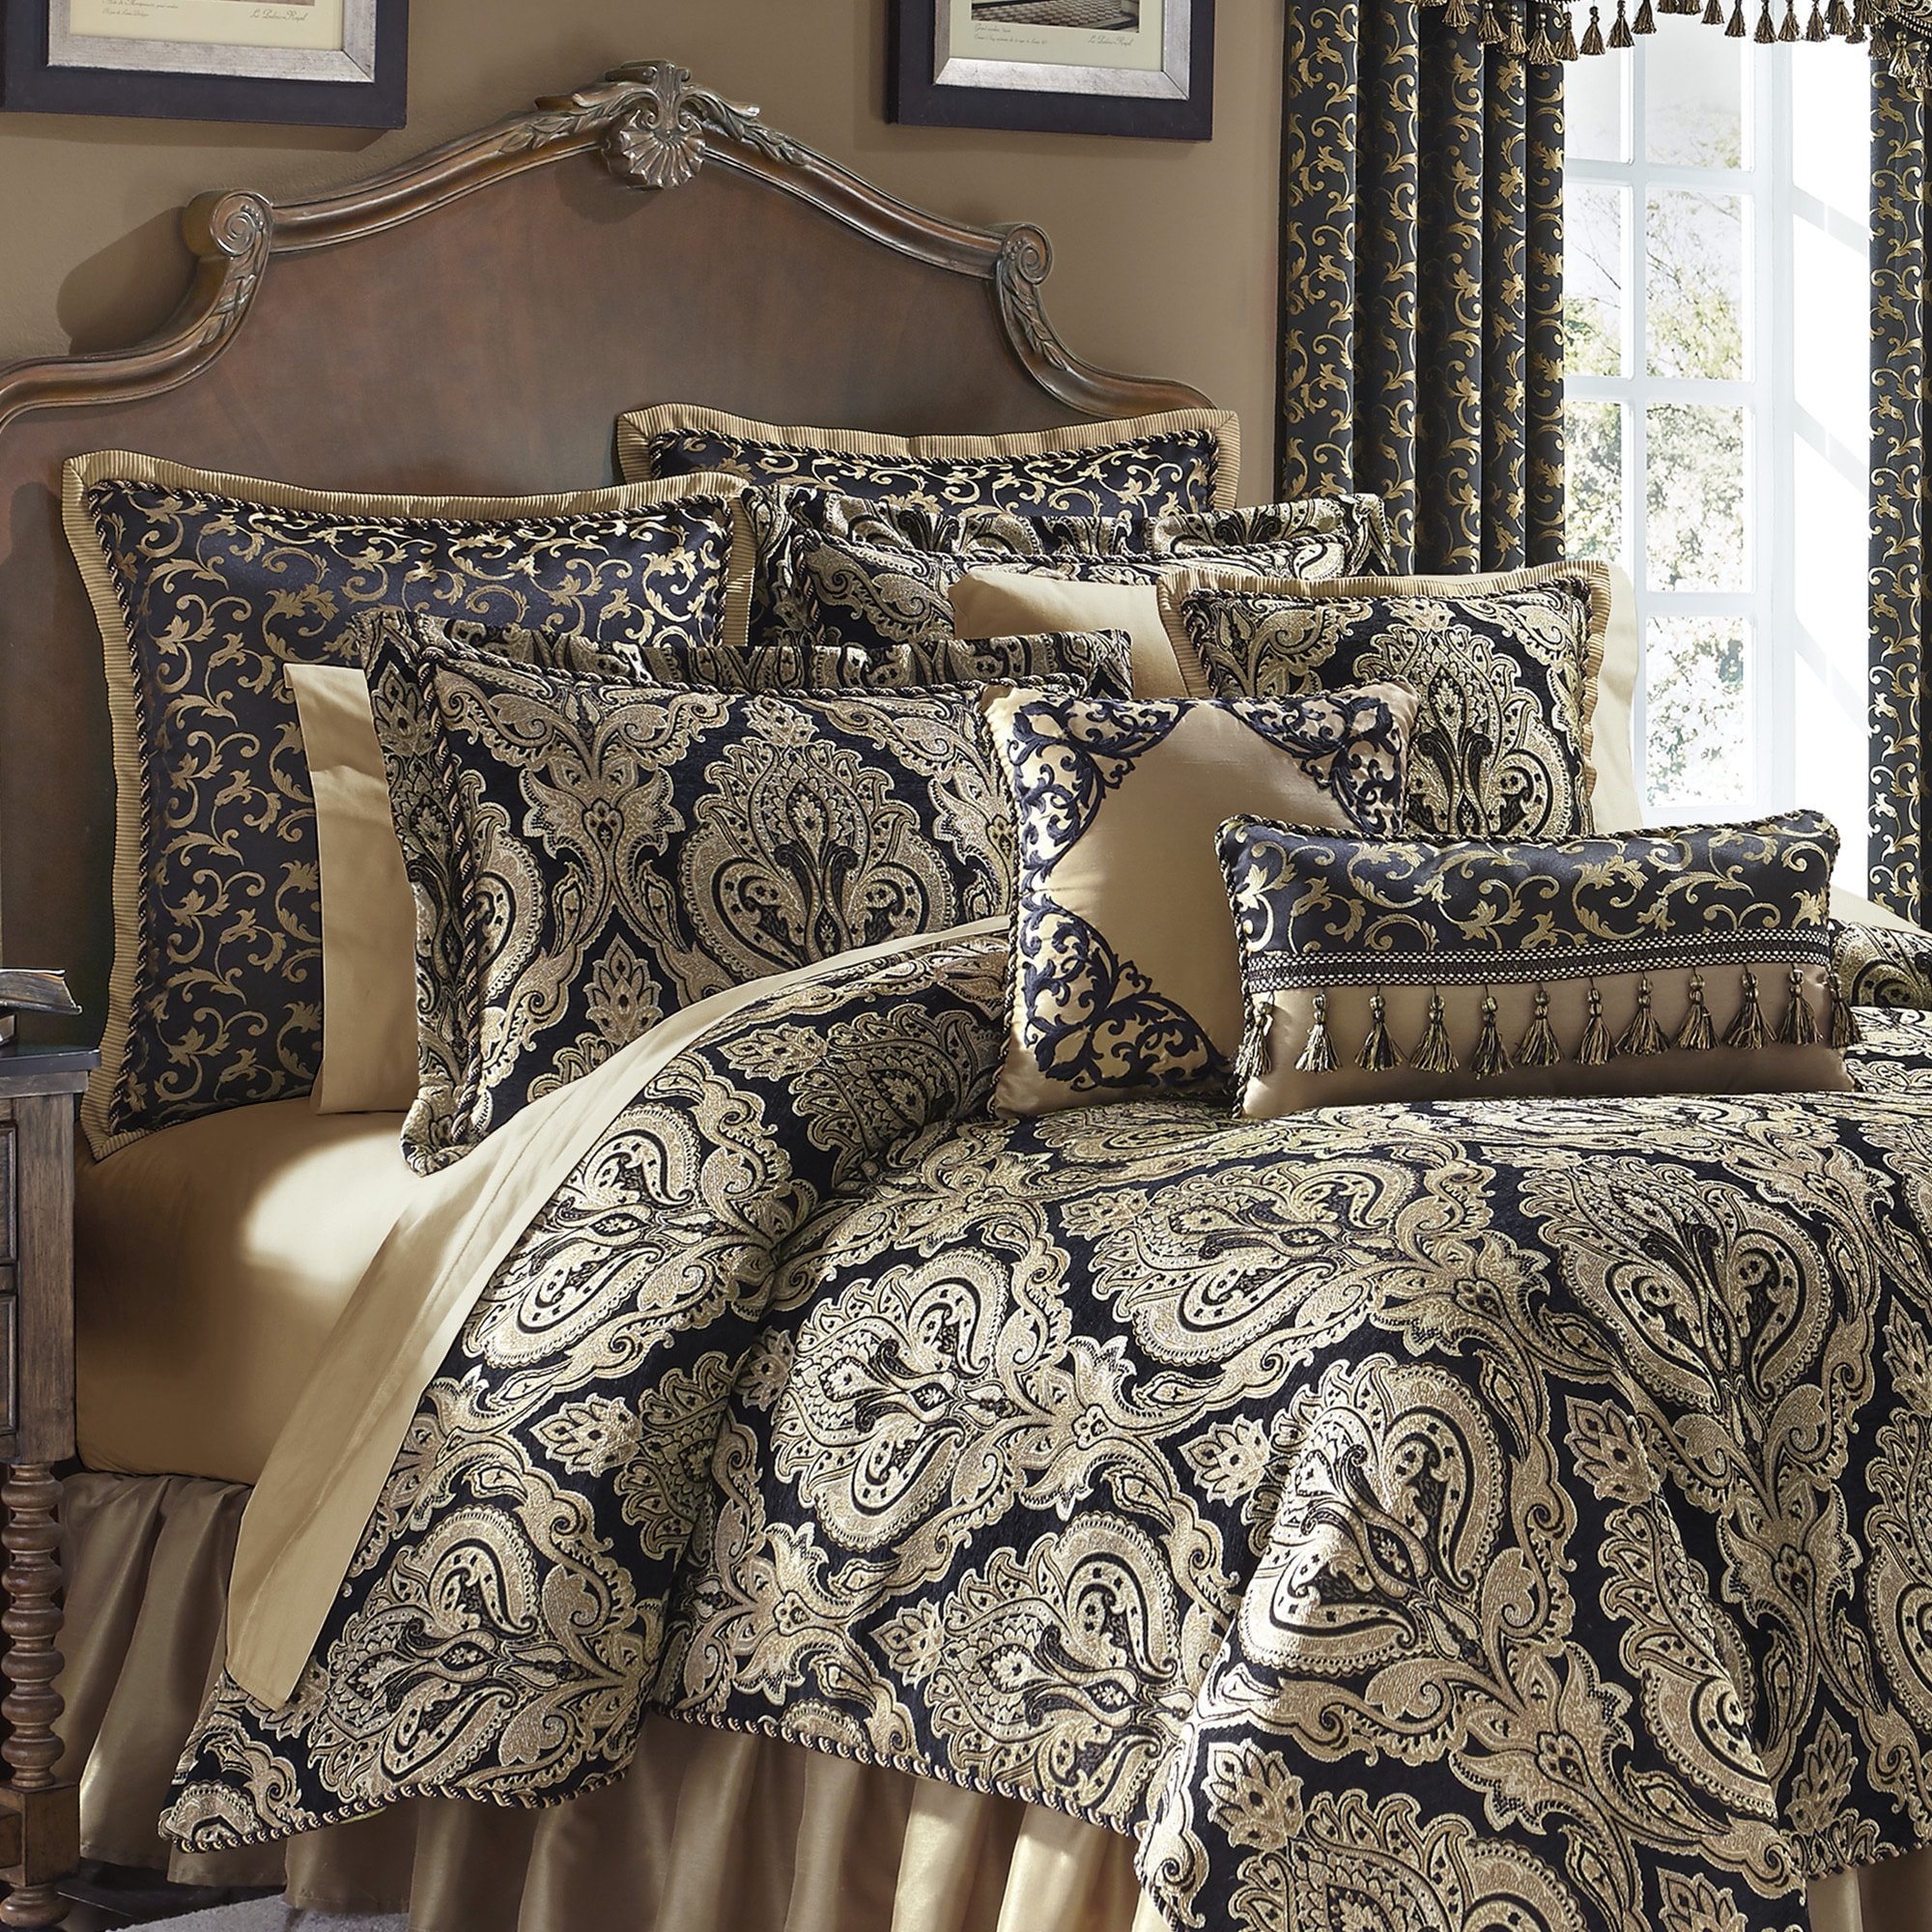 bed walmart sets comforter discontinued gypsy comforters organic croscill denim bedding teen of shop cheap nautica full baby size king